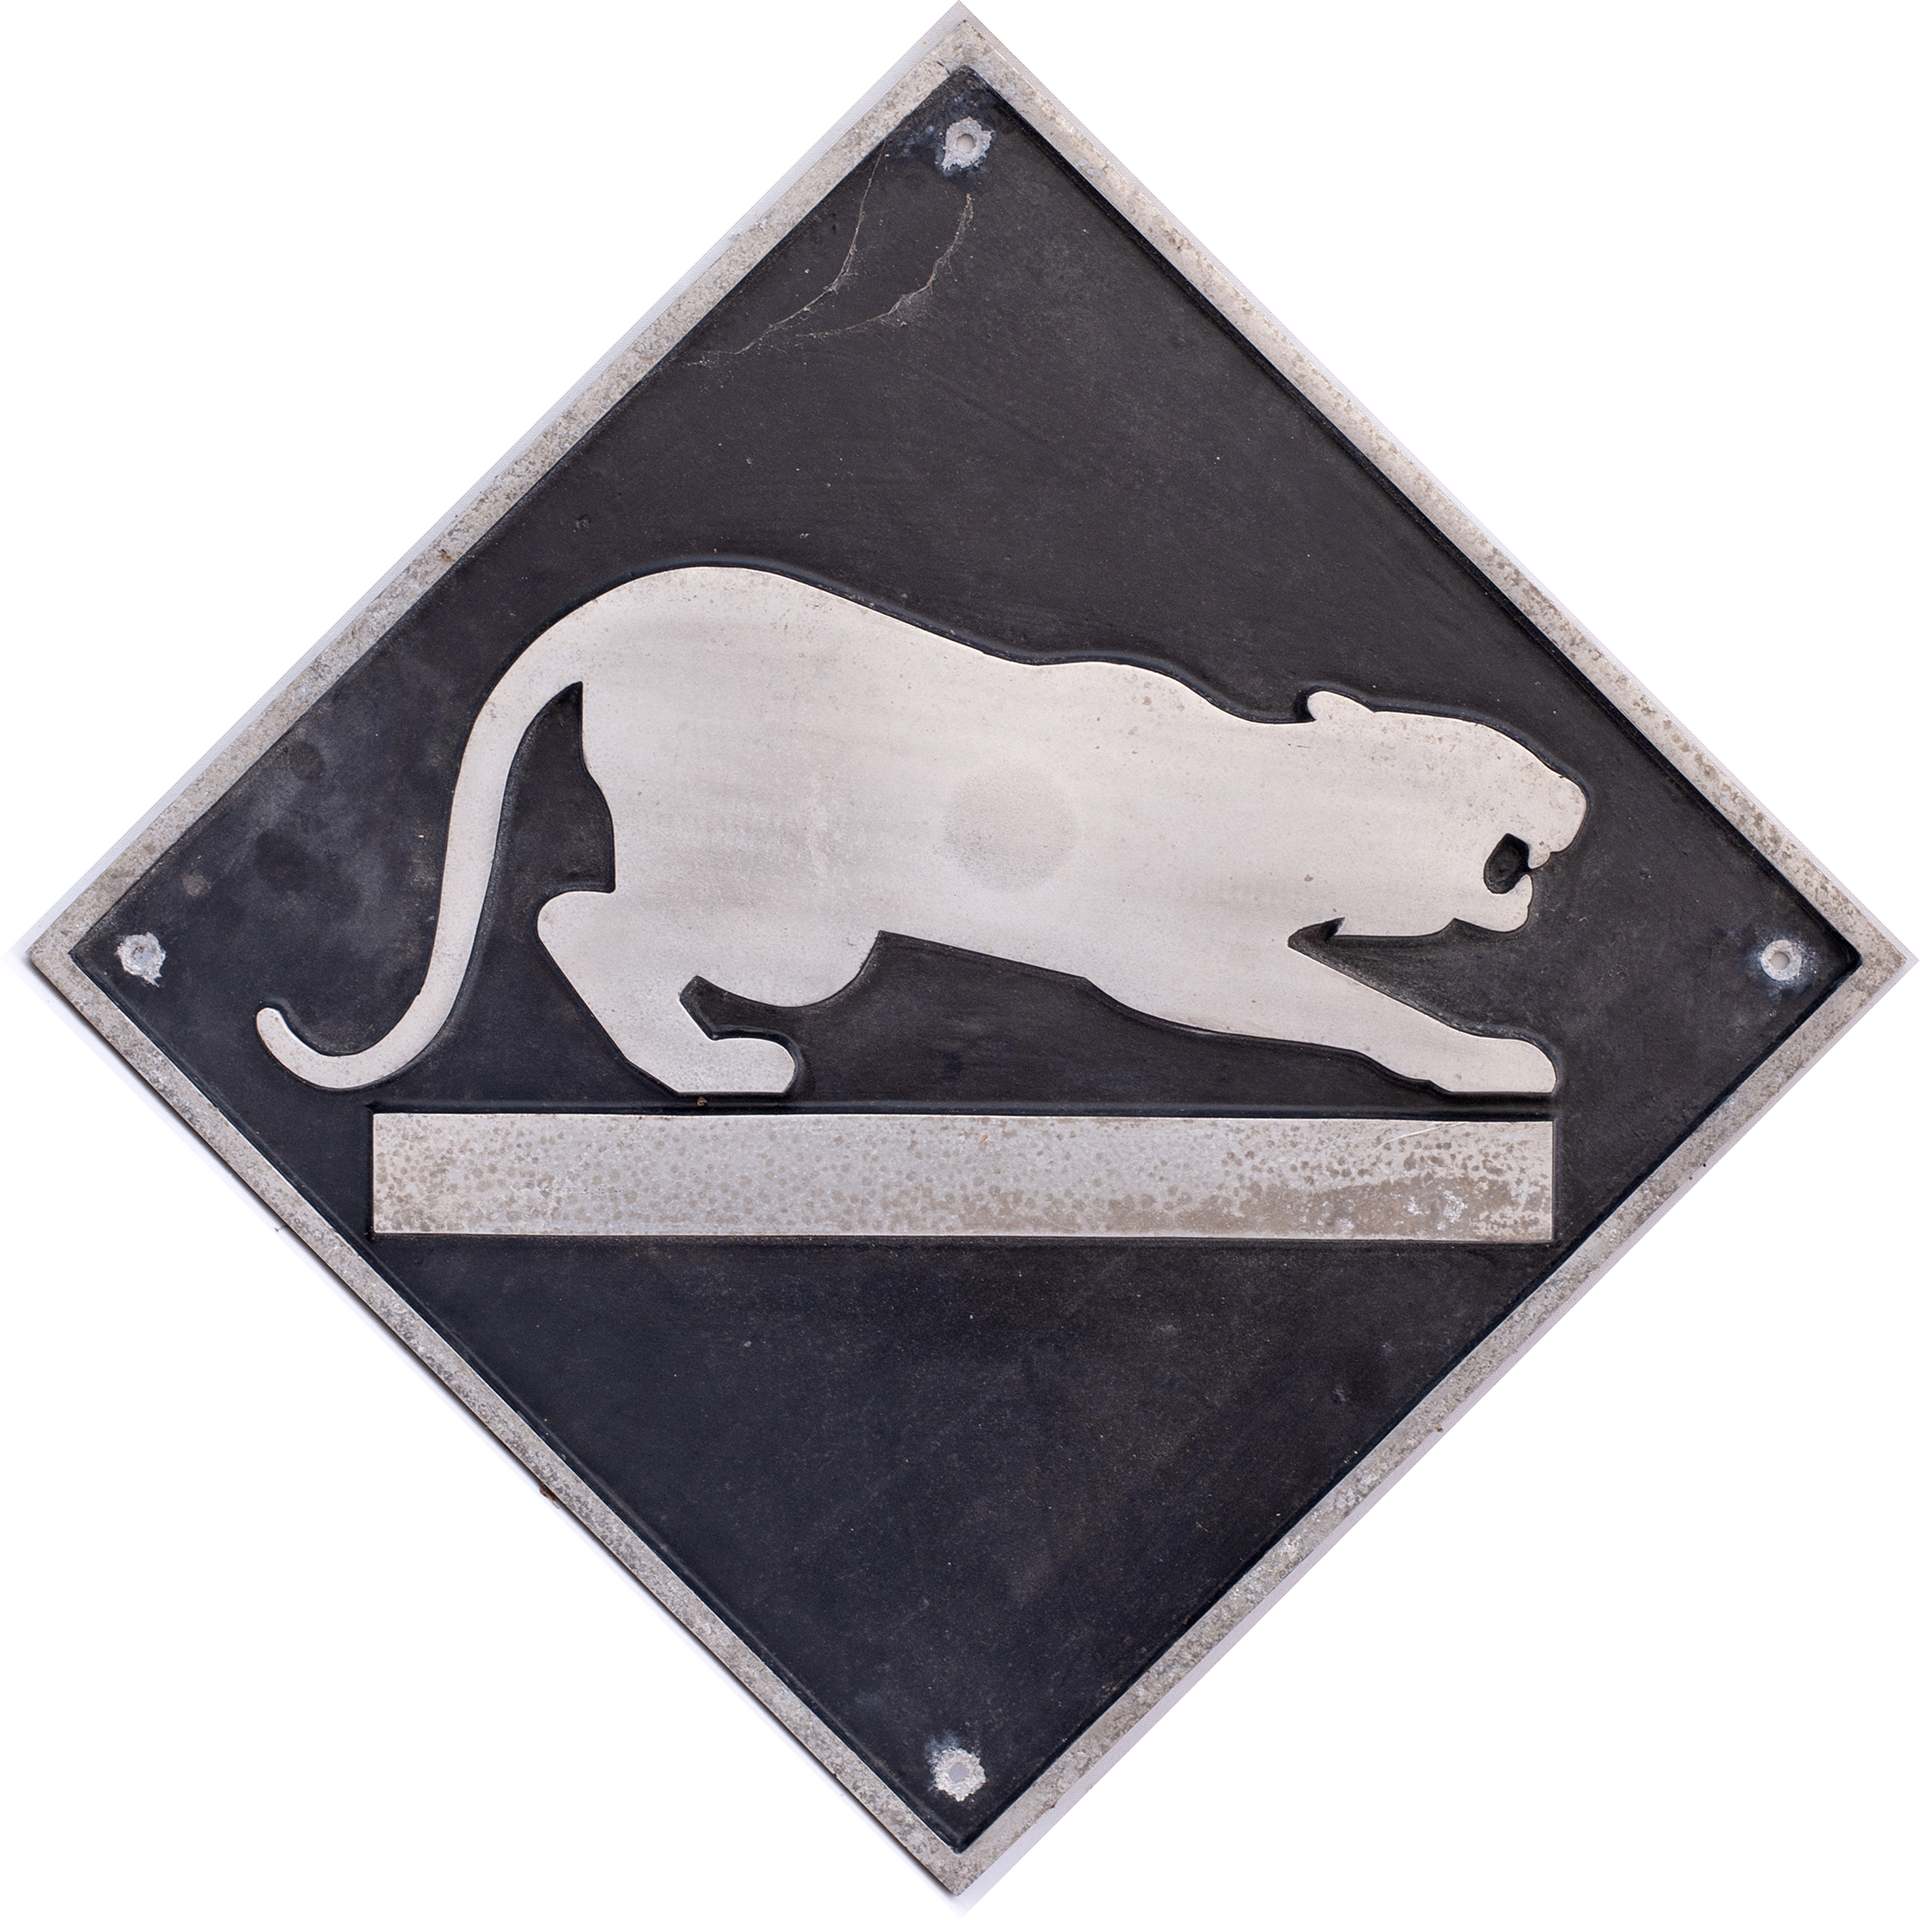 British Rail cast aluminium depot plaque for Leicester depicting the Panther. Square cast